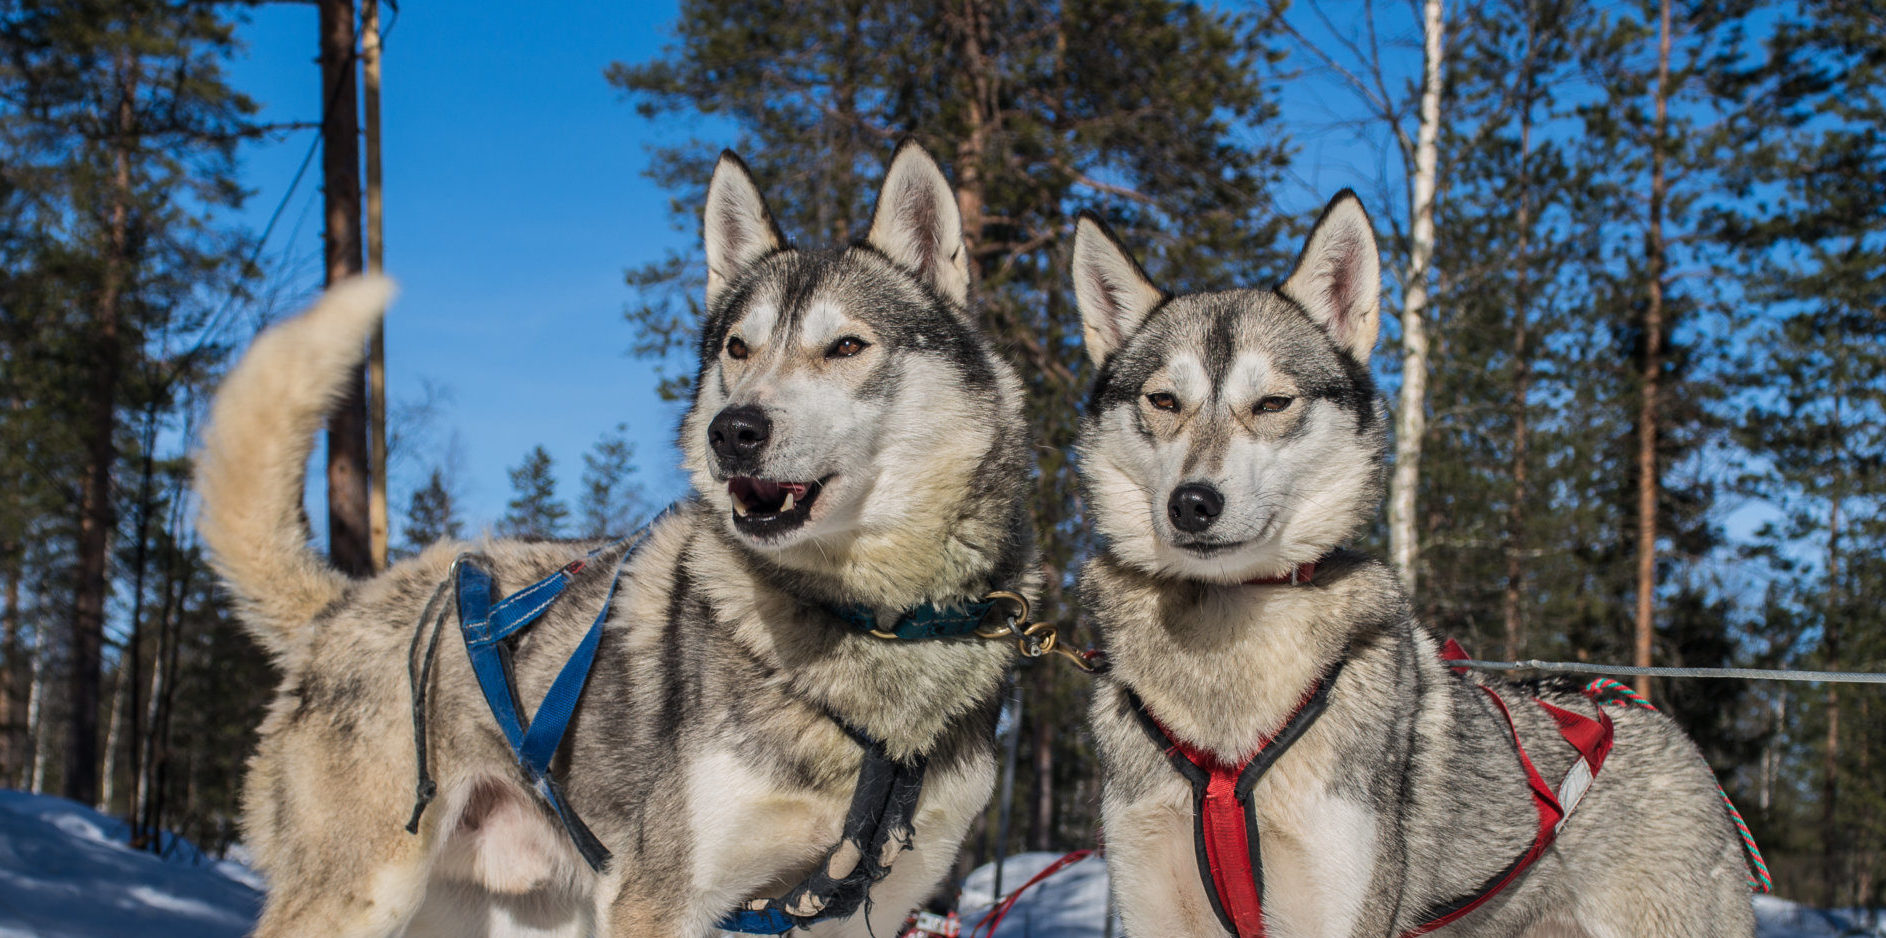 297f6e078d Visit a Reindeer Farm and Husky Farm by Snowmobile Sleigh - Lapland Welcome  in Finland